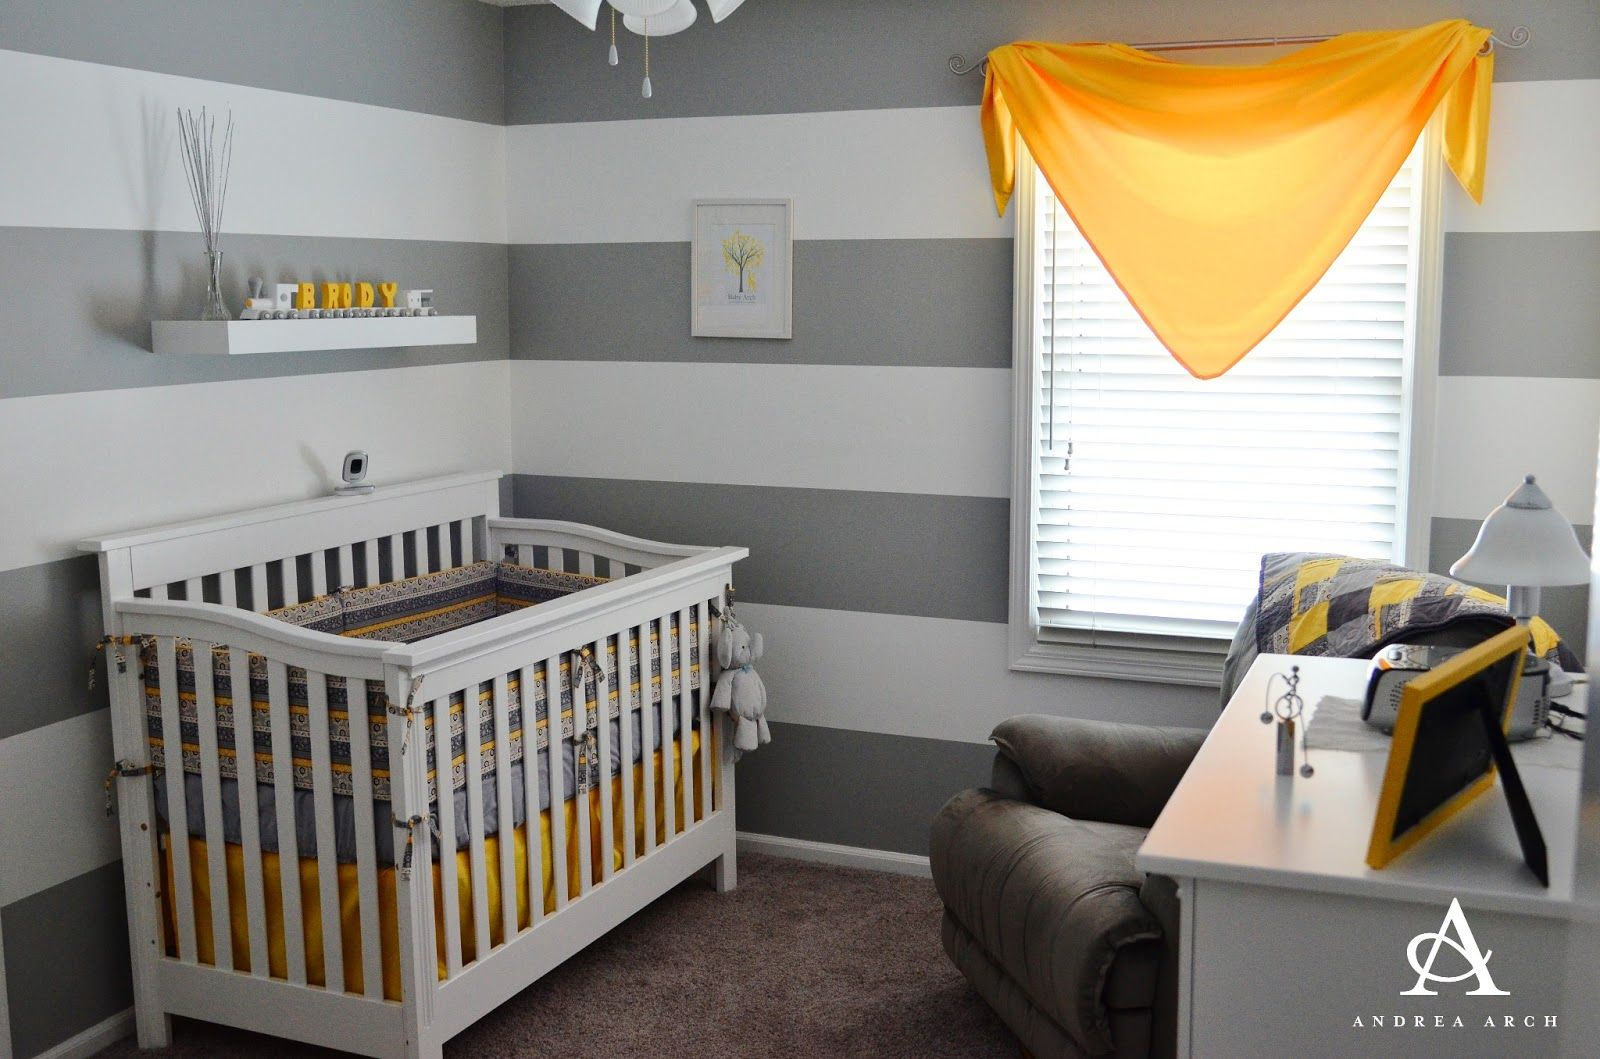 Grey and white baby room ideas - 55 Best Ideas About Nursery Themes On Pinterest Yellow Grey Nurseries Elephant Nursery And Owl 55 Best Ideas About Nursery Themes On Pinterest Yellow Grey